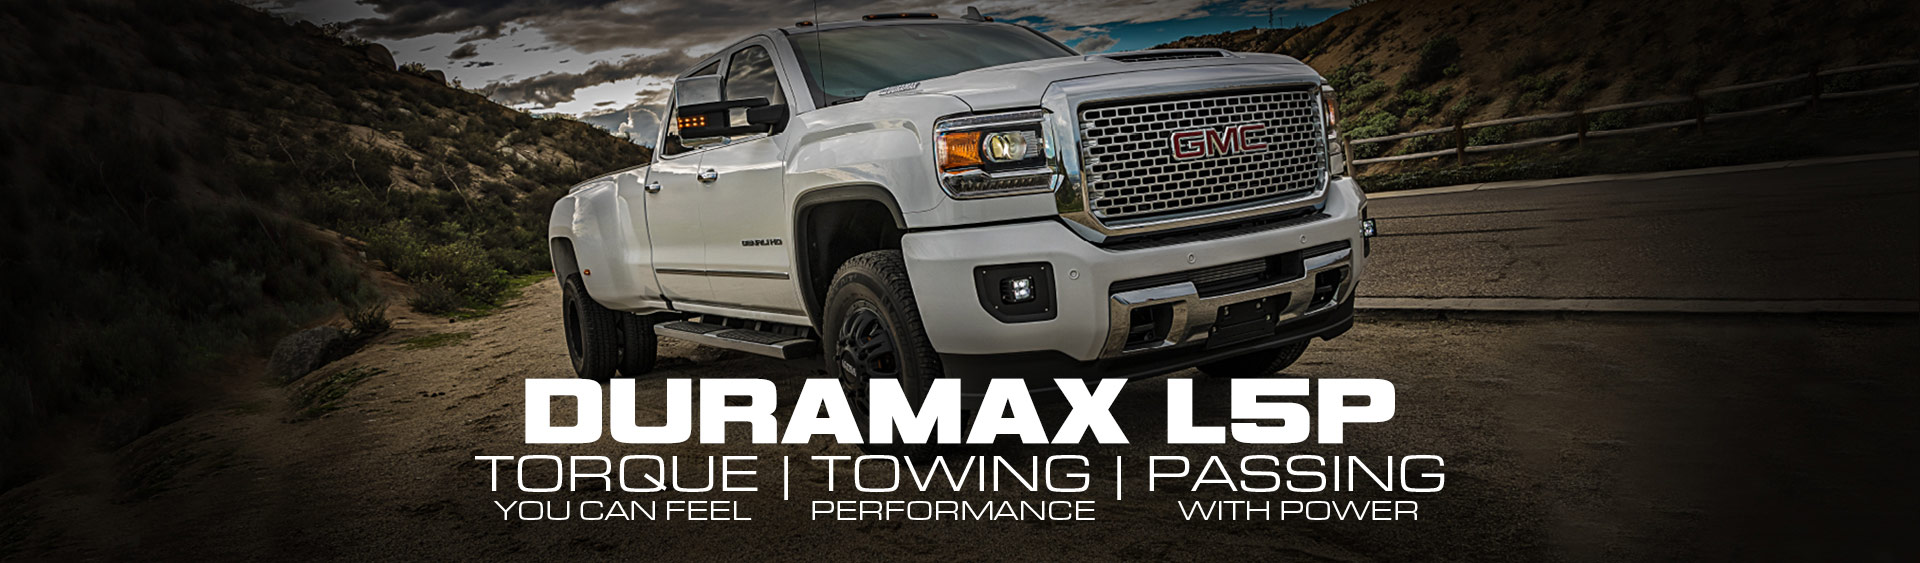 aFe POWER Chevy/GMC Duramax L5P Performance Parts